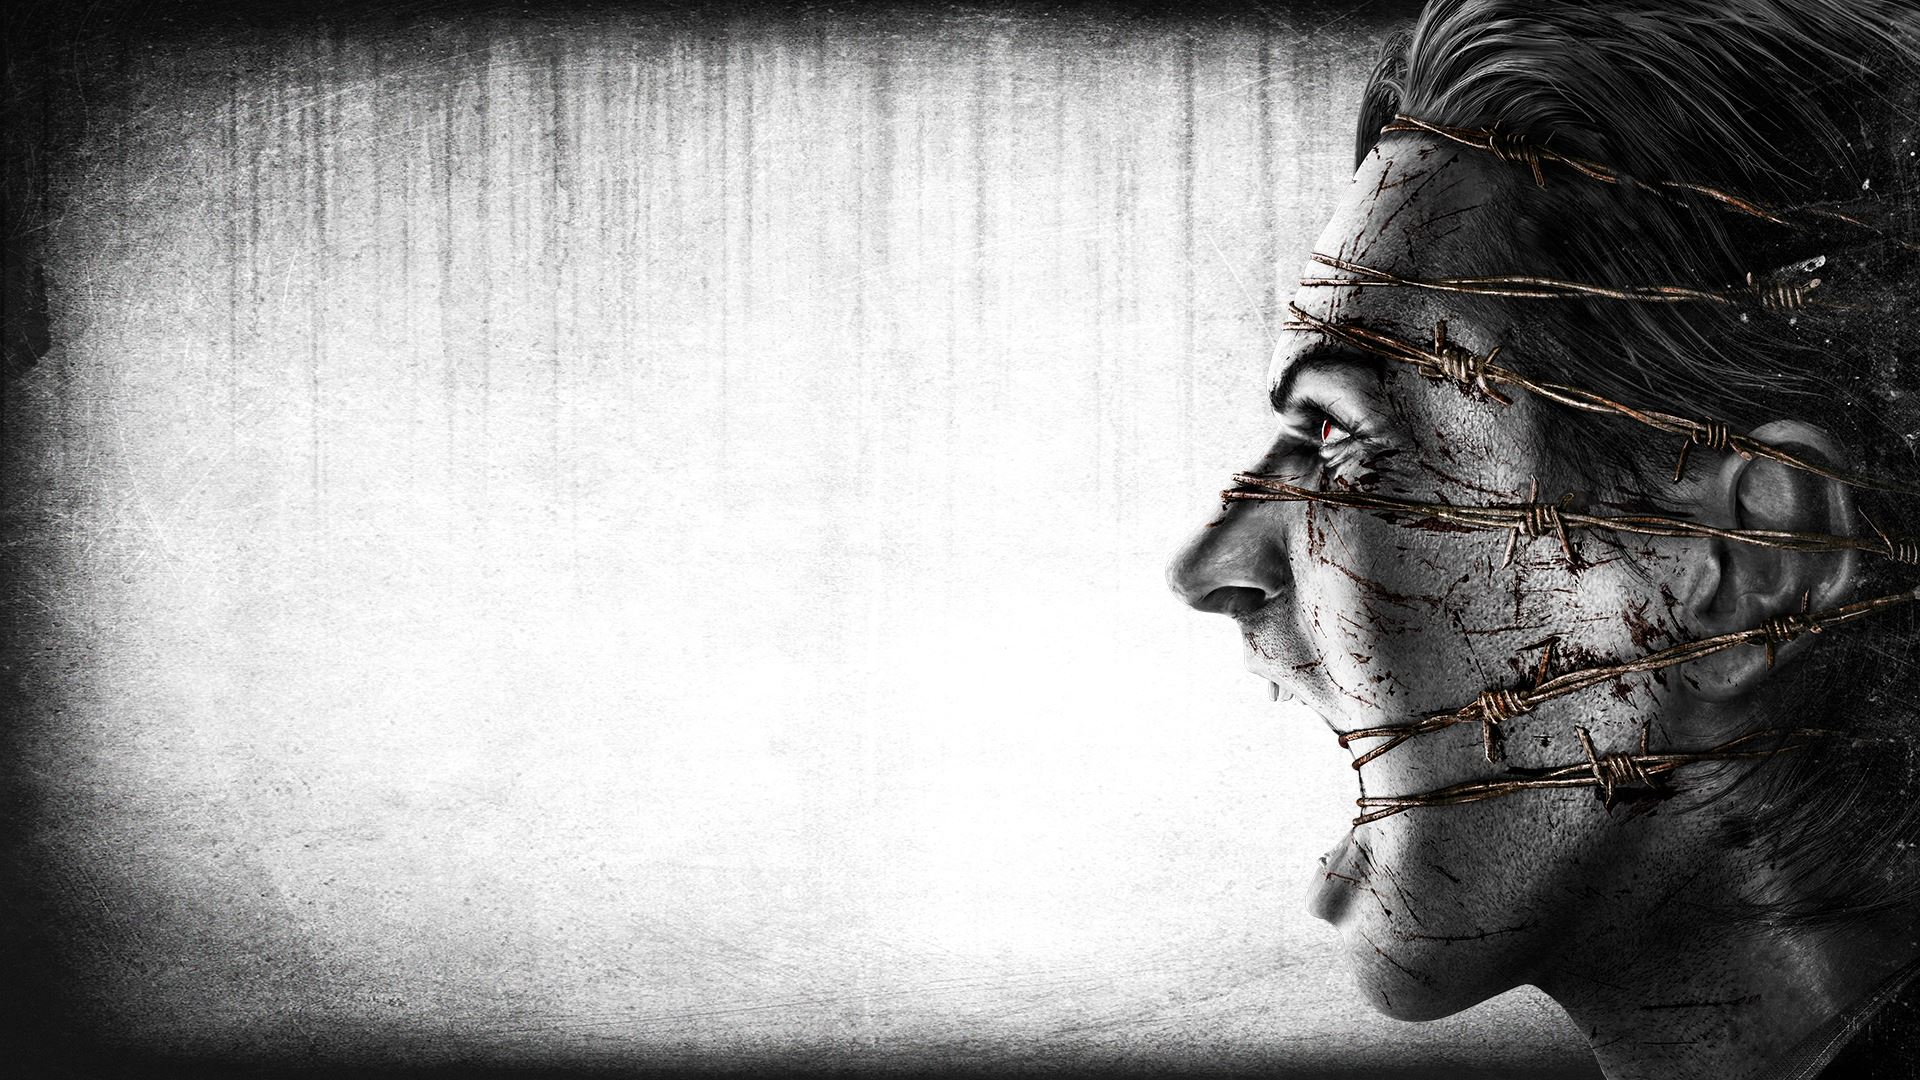 The Evil Within Wallpapers Or Desktop Backgrounds: The Evil Within Digital Bundle Available To Download Now